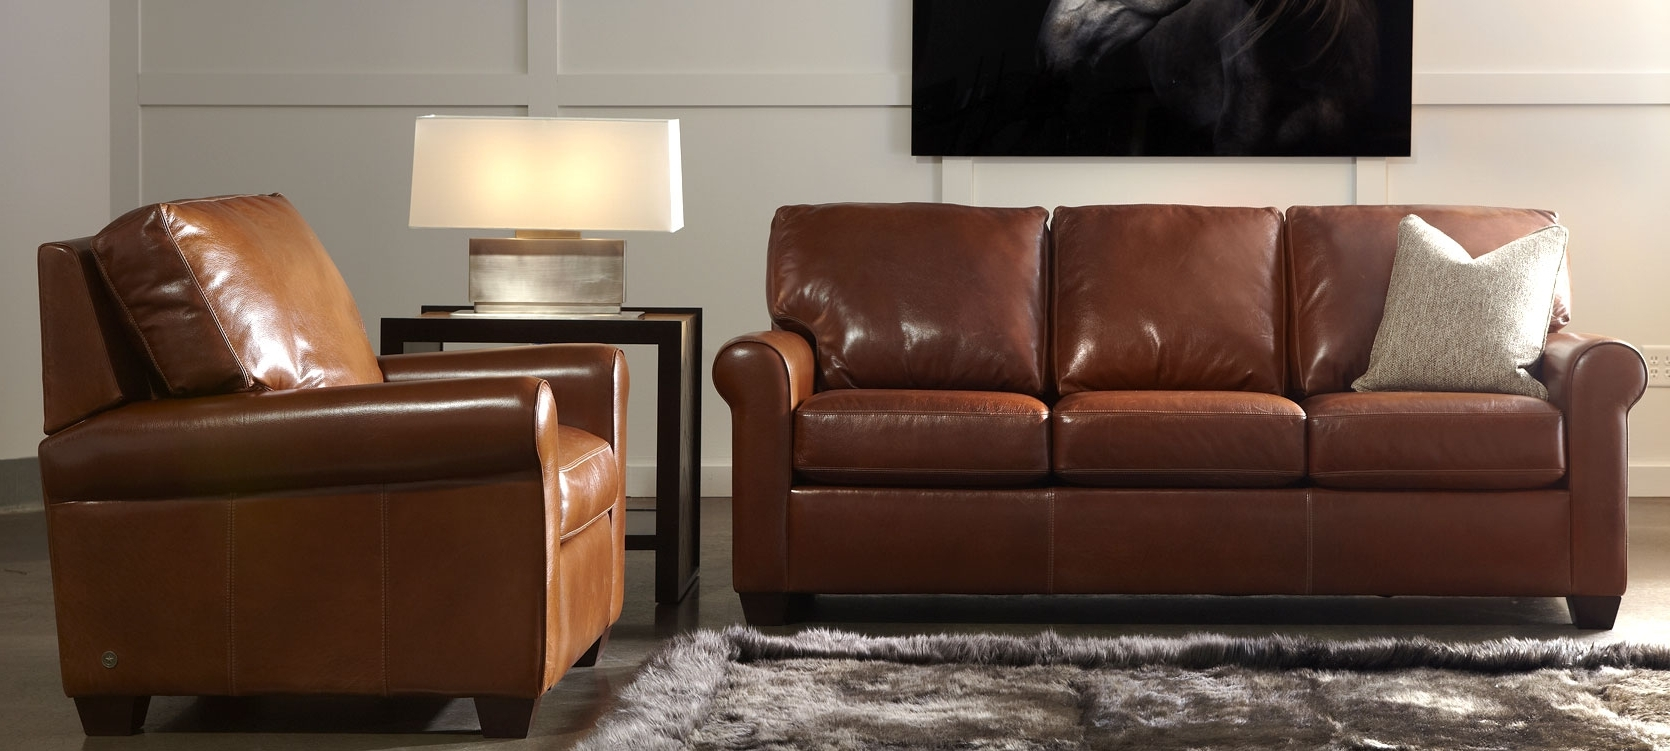 Eugene Oregon Sectional Sofas Throughout Famous Furniture Store In Eugene, Oregon – Riley's Real Wood Furniture (View 2 of 20)